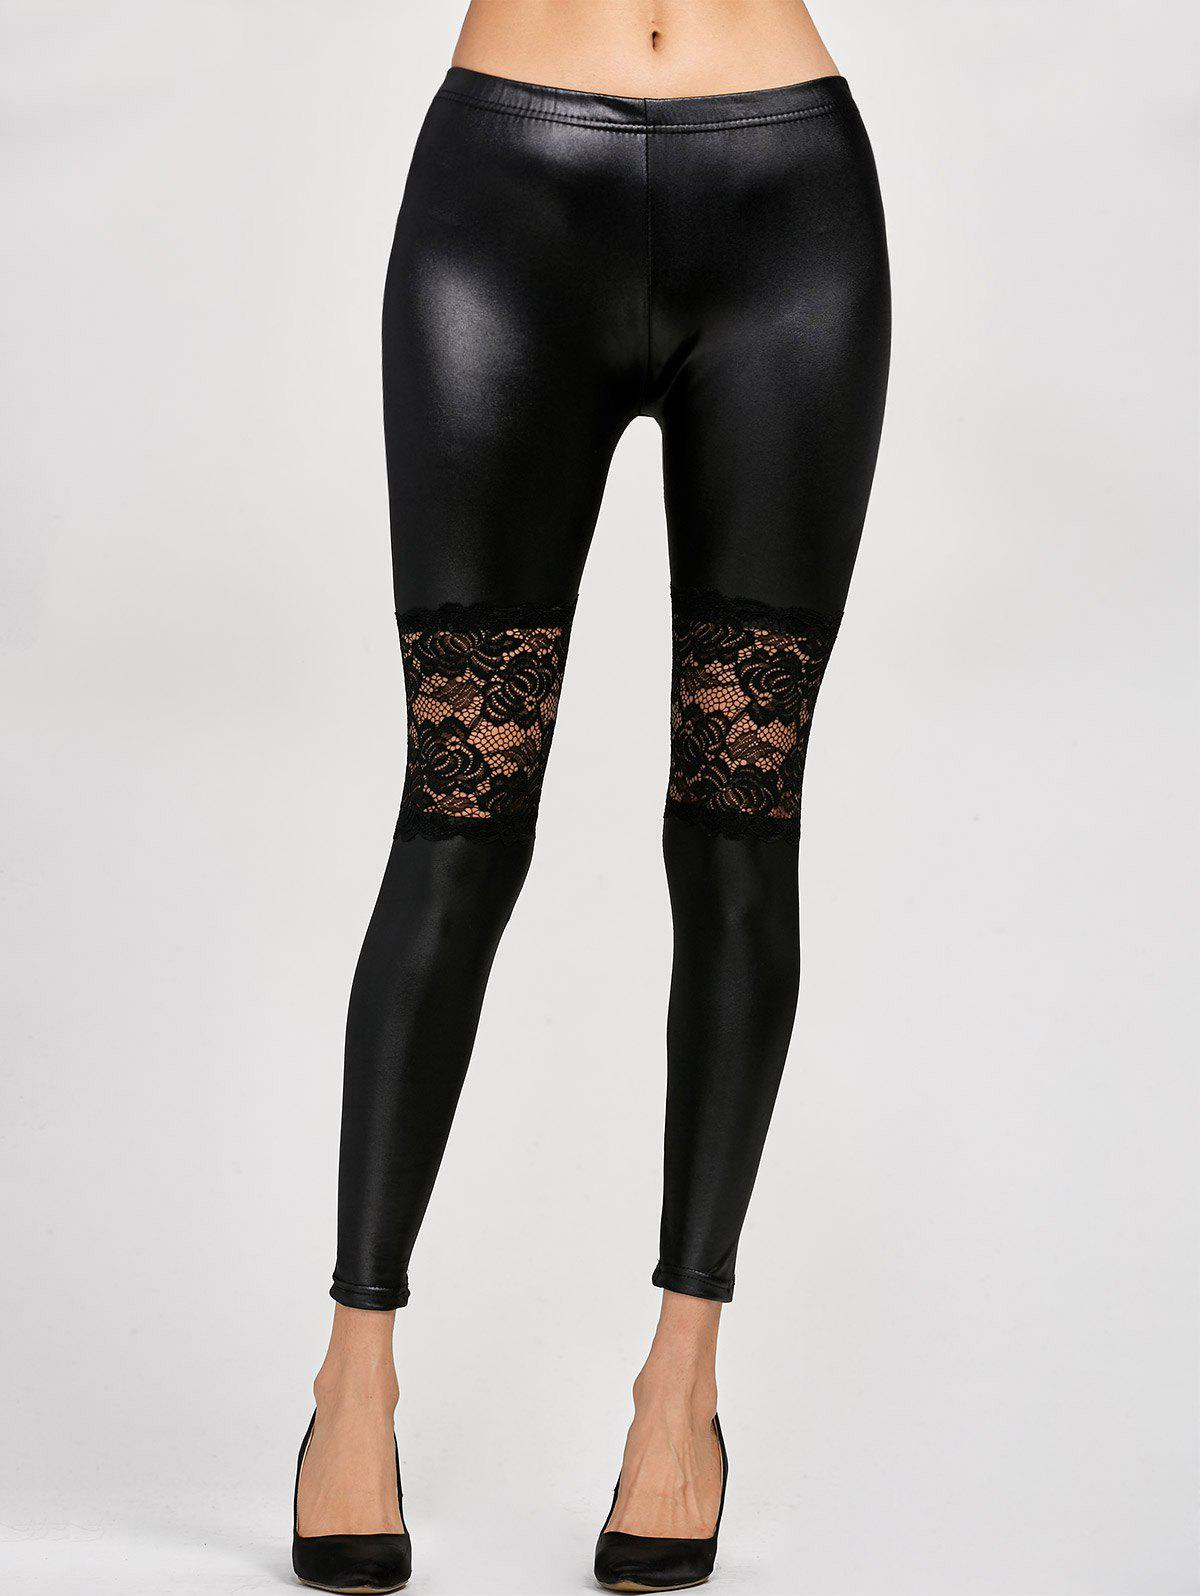 Lace Panel Leather LeggingsWOMEN<br><br>Size: ONE SIZE; Color: BLACK; Style: Streetwear; Length: Ninth; Material: Faux Leather; Fit Type: Skinny; Waist Type: High; Closure Type: Elastic Waist; Pattern Type: Patchwork; Embellishment: Lace; Pant Style: Pencil Pants; Weight: 0.143kg; Package Contents: 1 x Leggings;